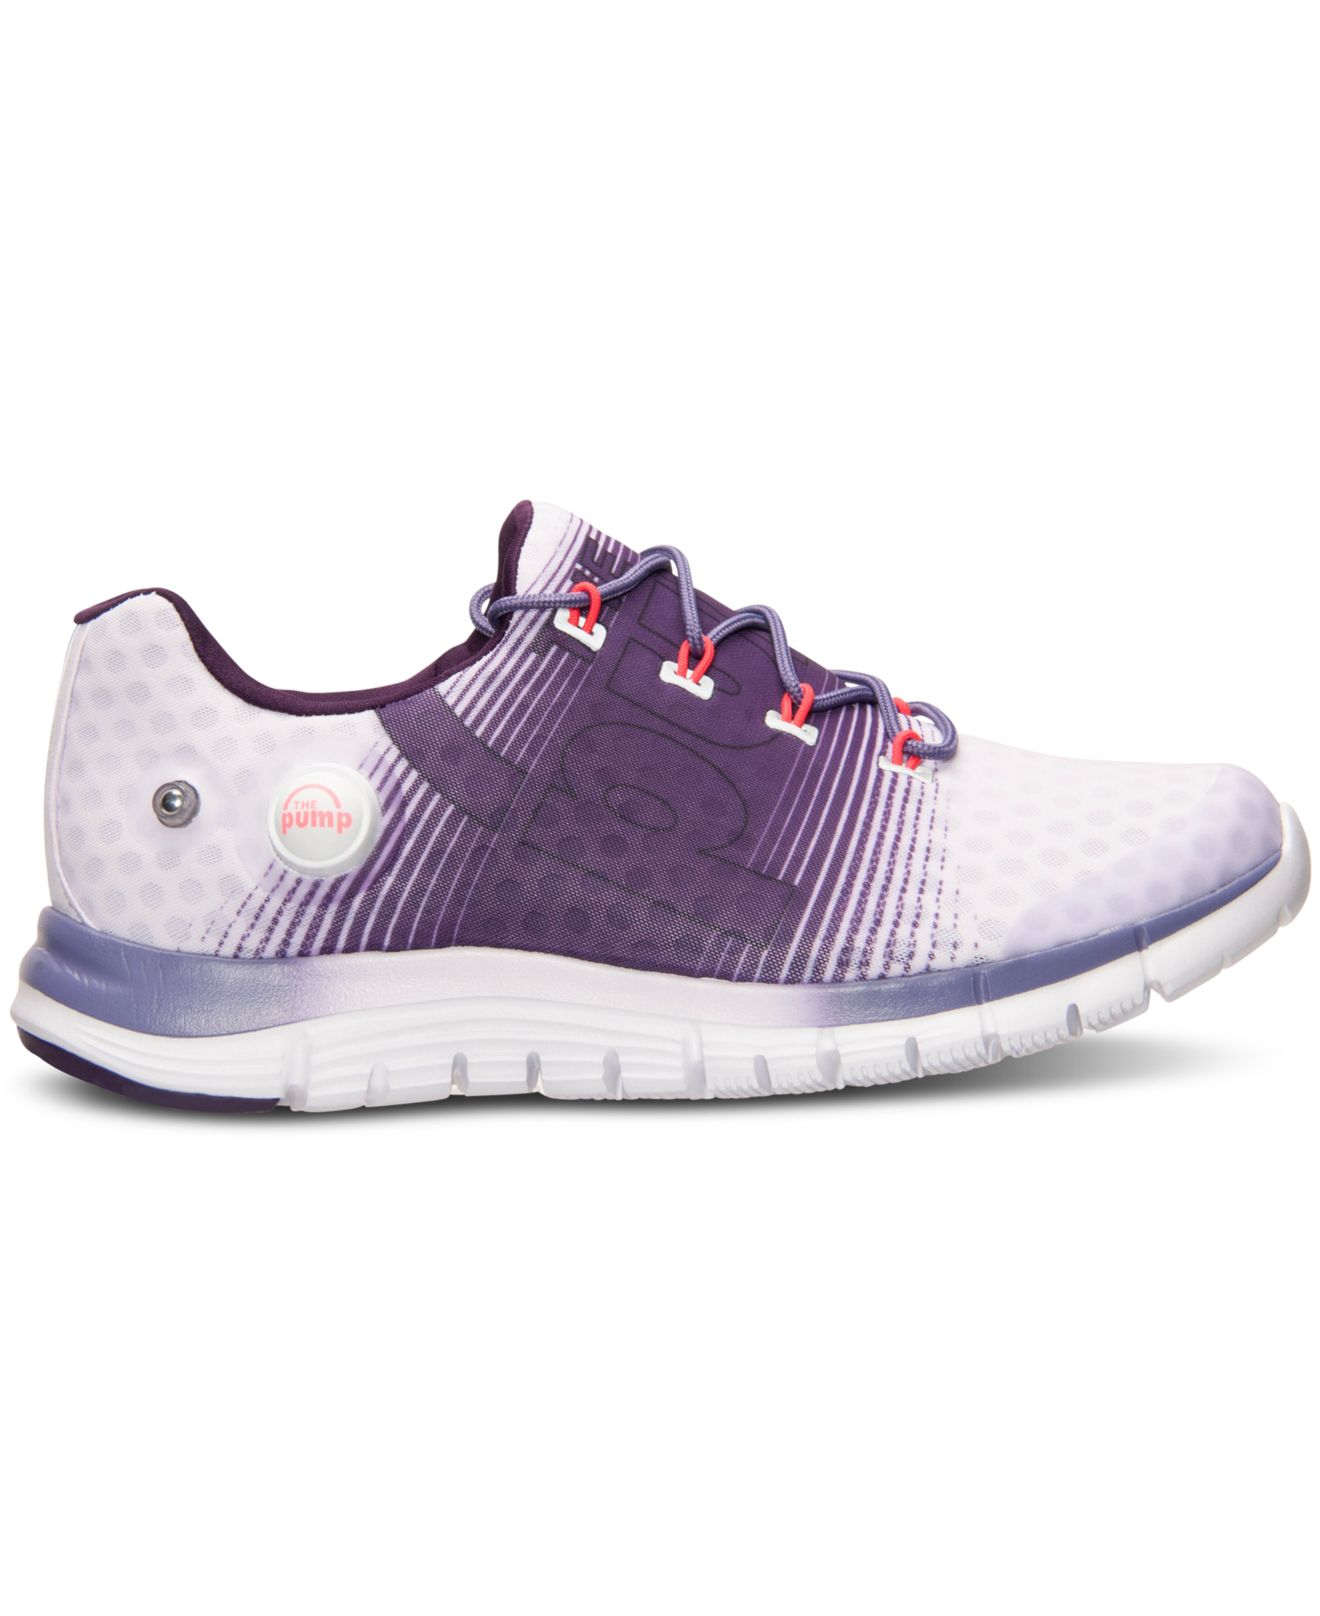 Lyst - Reebok Women s Zpump Fusion Running Sneakers From Finish Line ... e5e865bf3